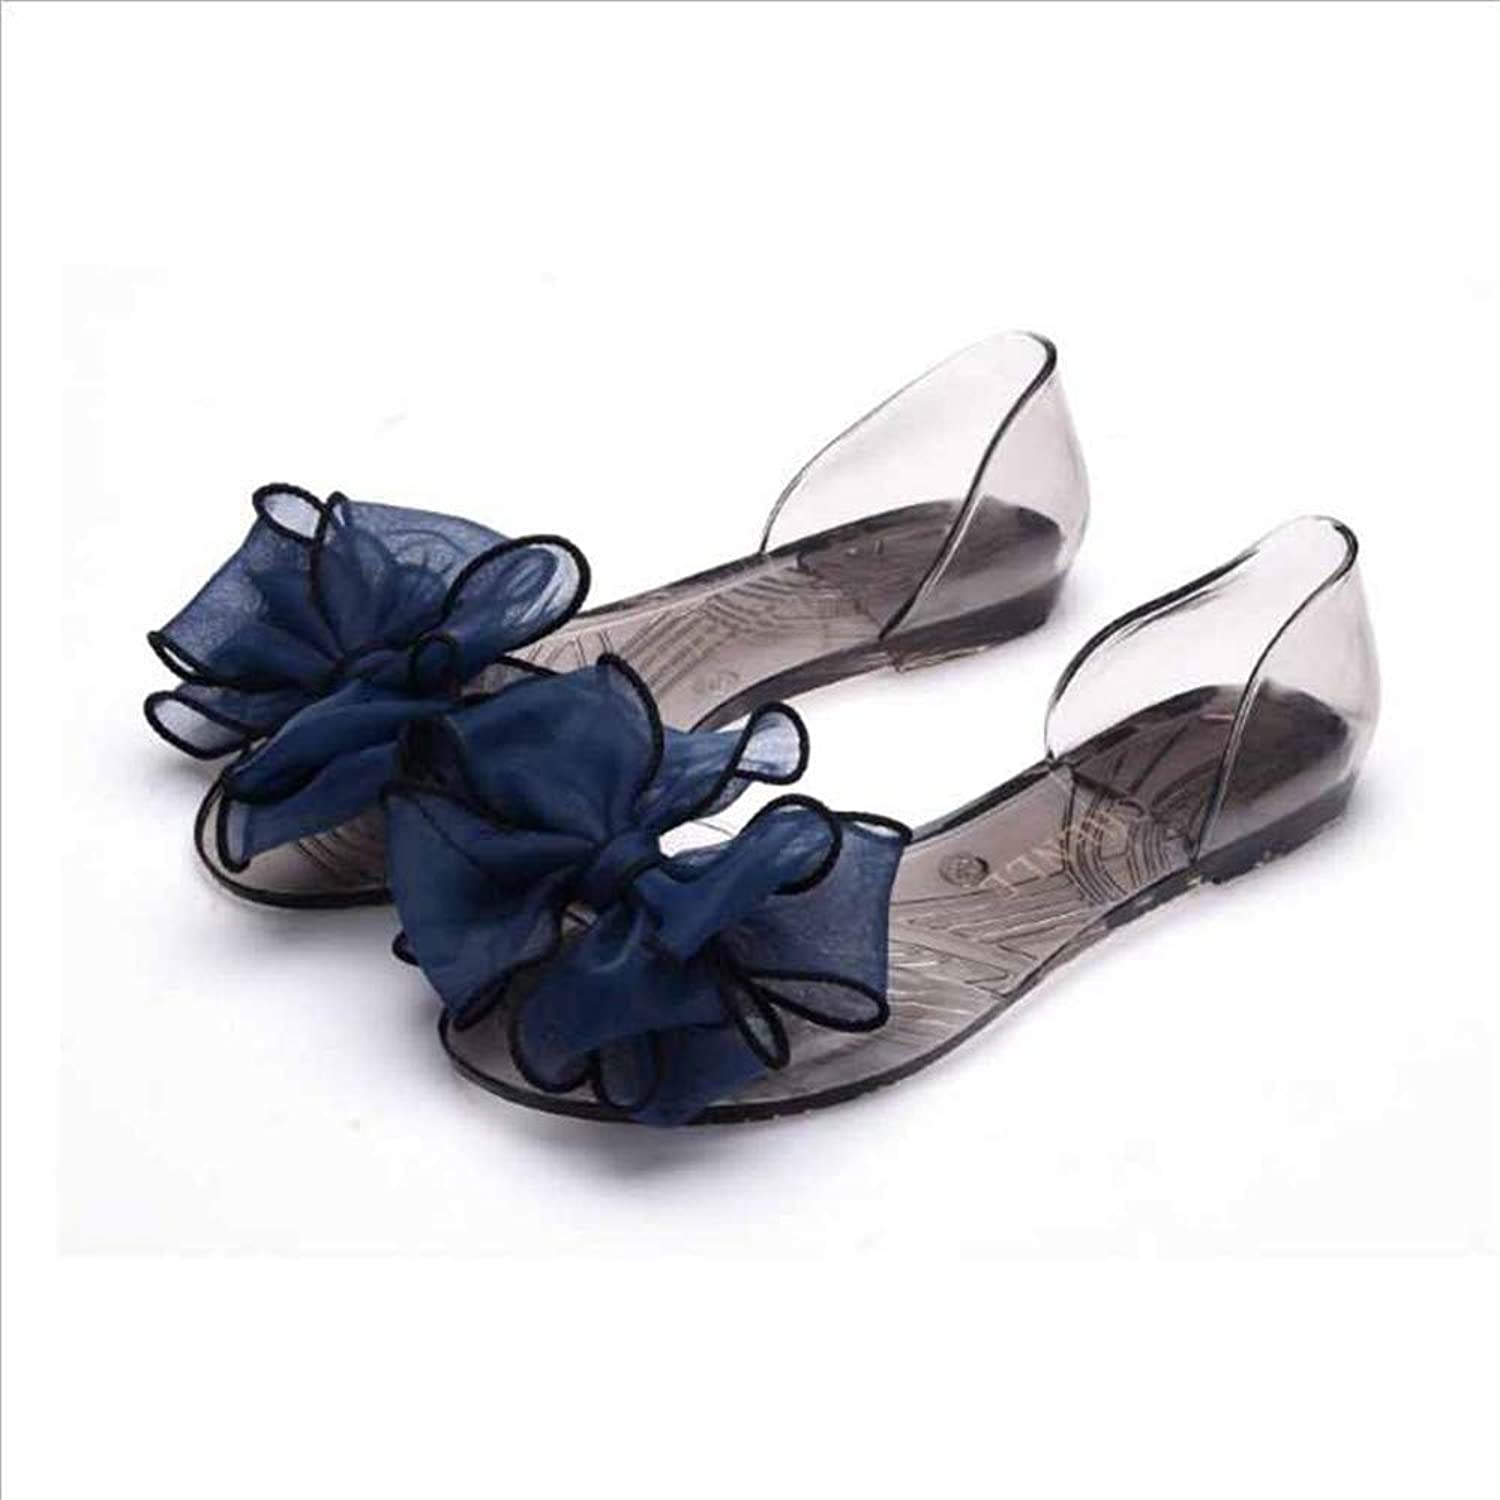 Summer Women Flats shoes Genuine Leather shoes Woman Cutout Loafers Slip on Breathable Ballet Flat Ballerina Flats